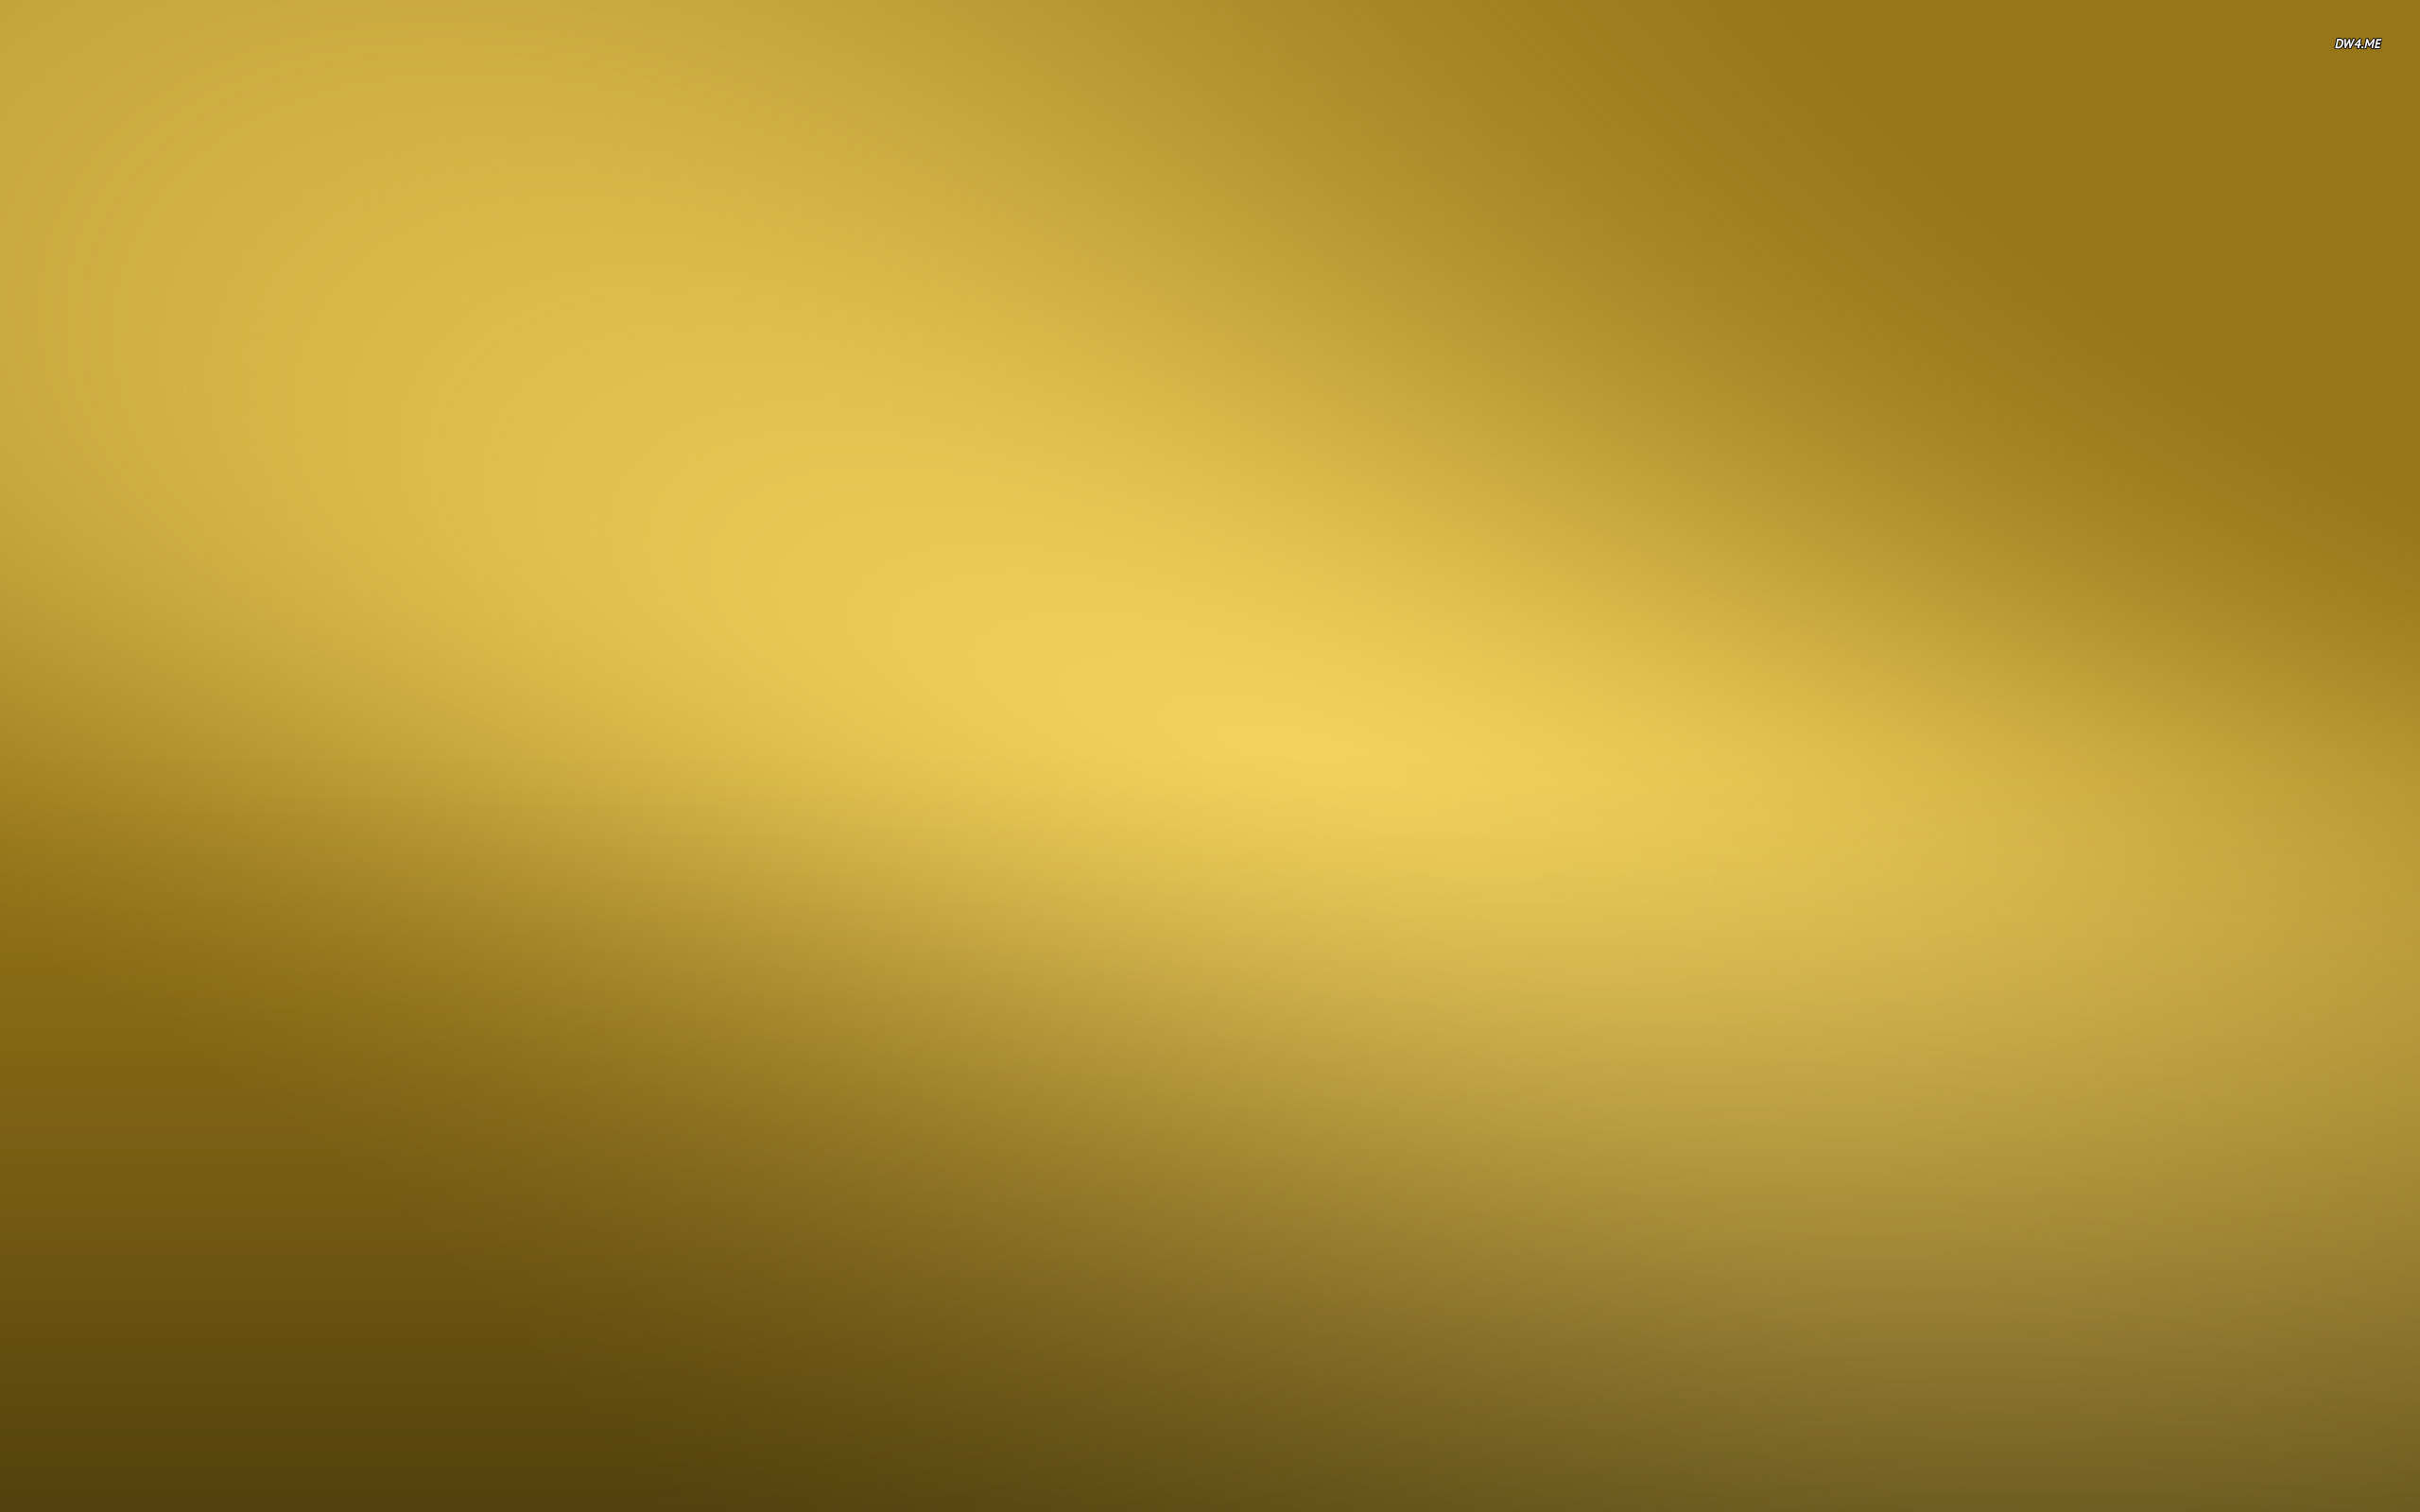 metallic gold color background images